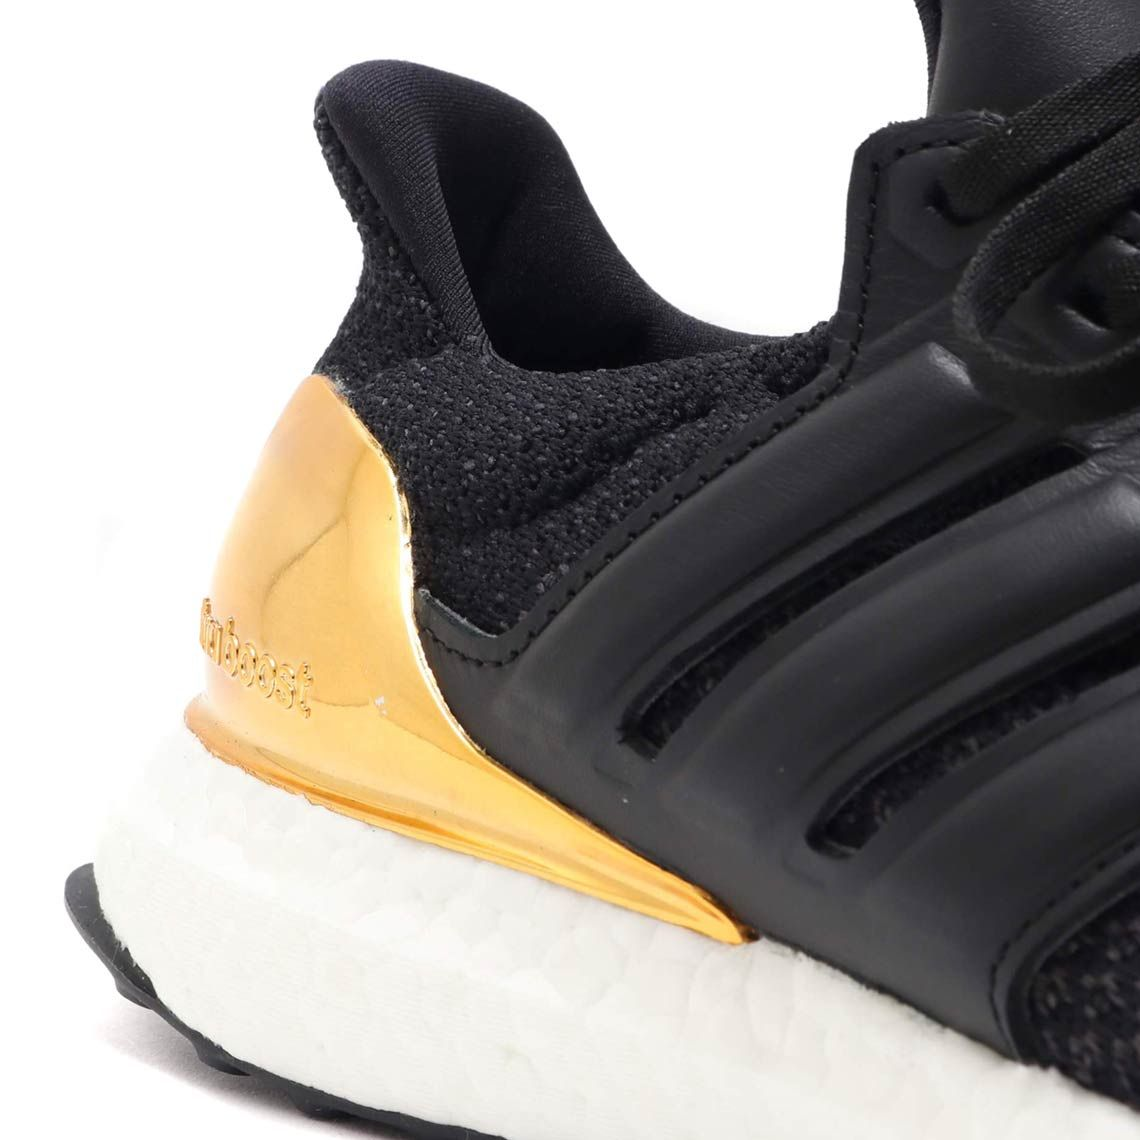 7acd39b0ae1 adidas Ultra Boost Gold Medal BB3929 Release Date